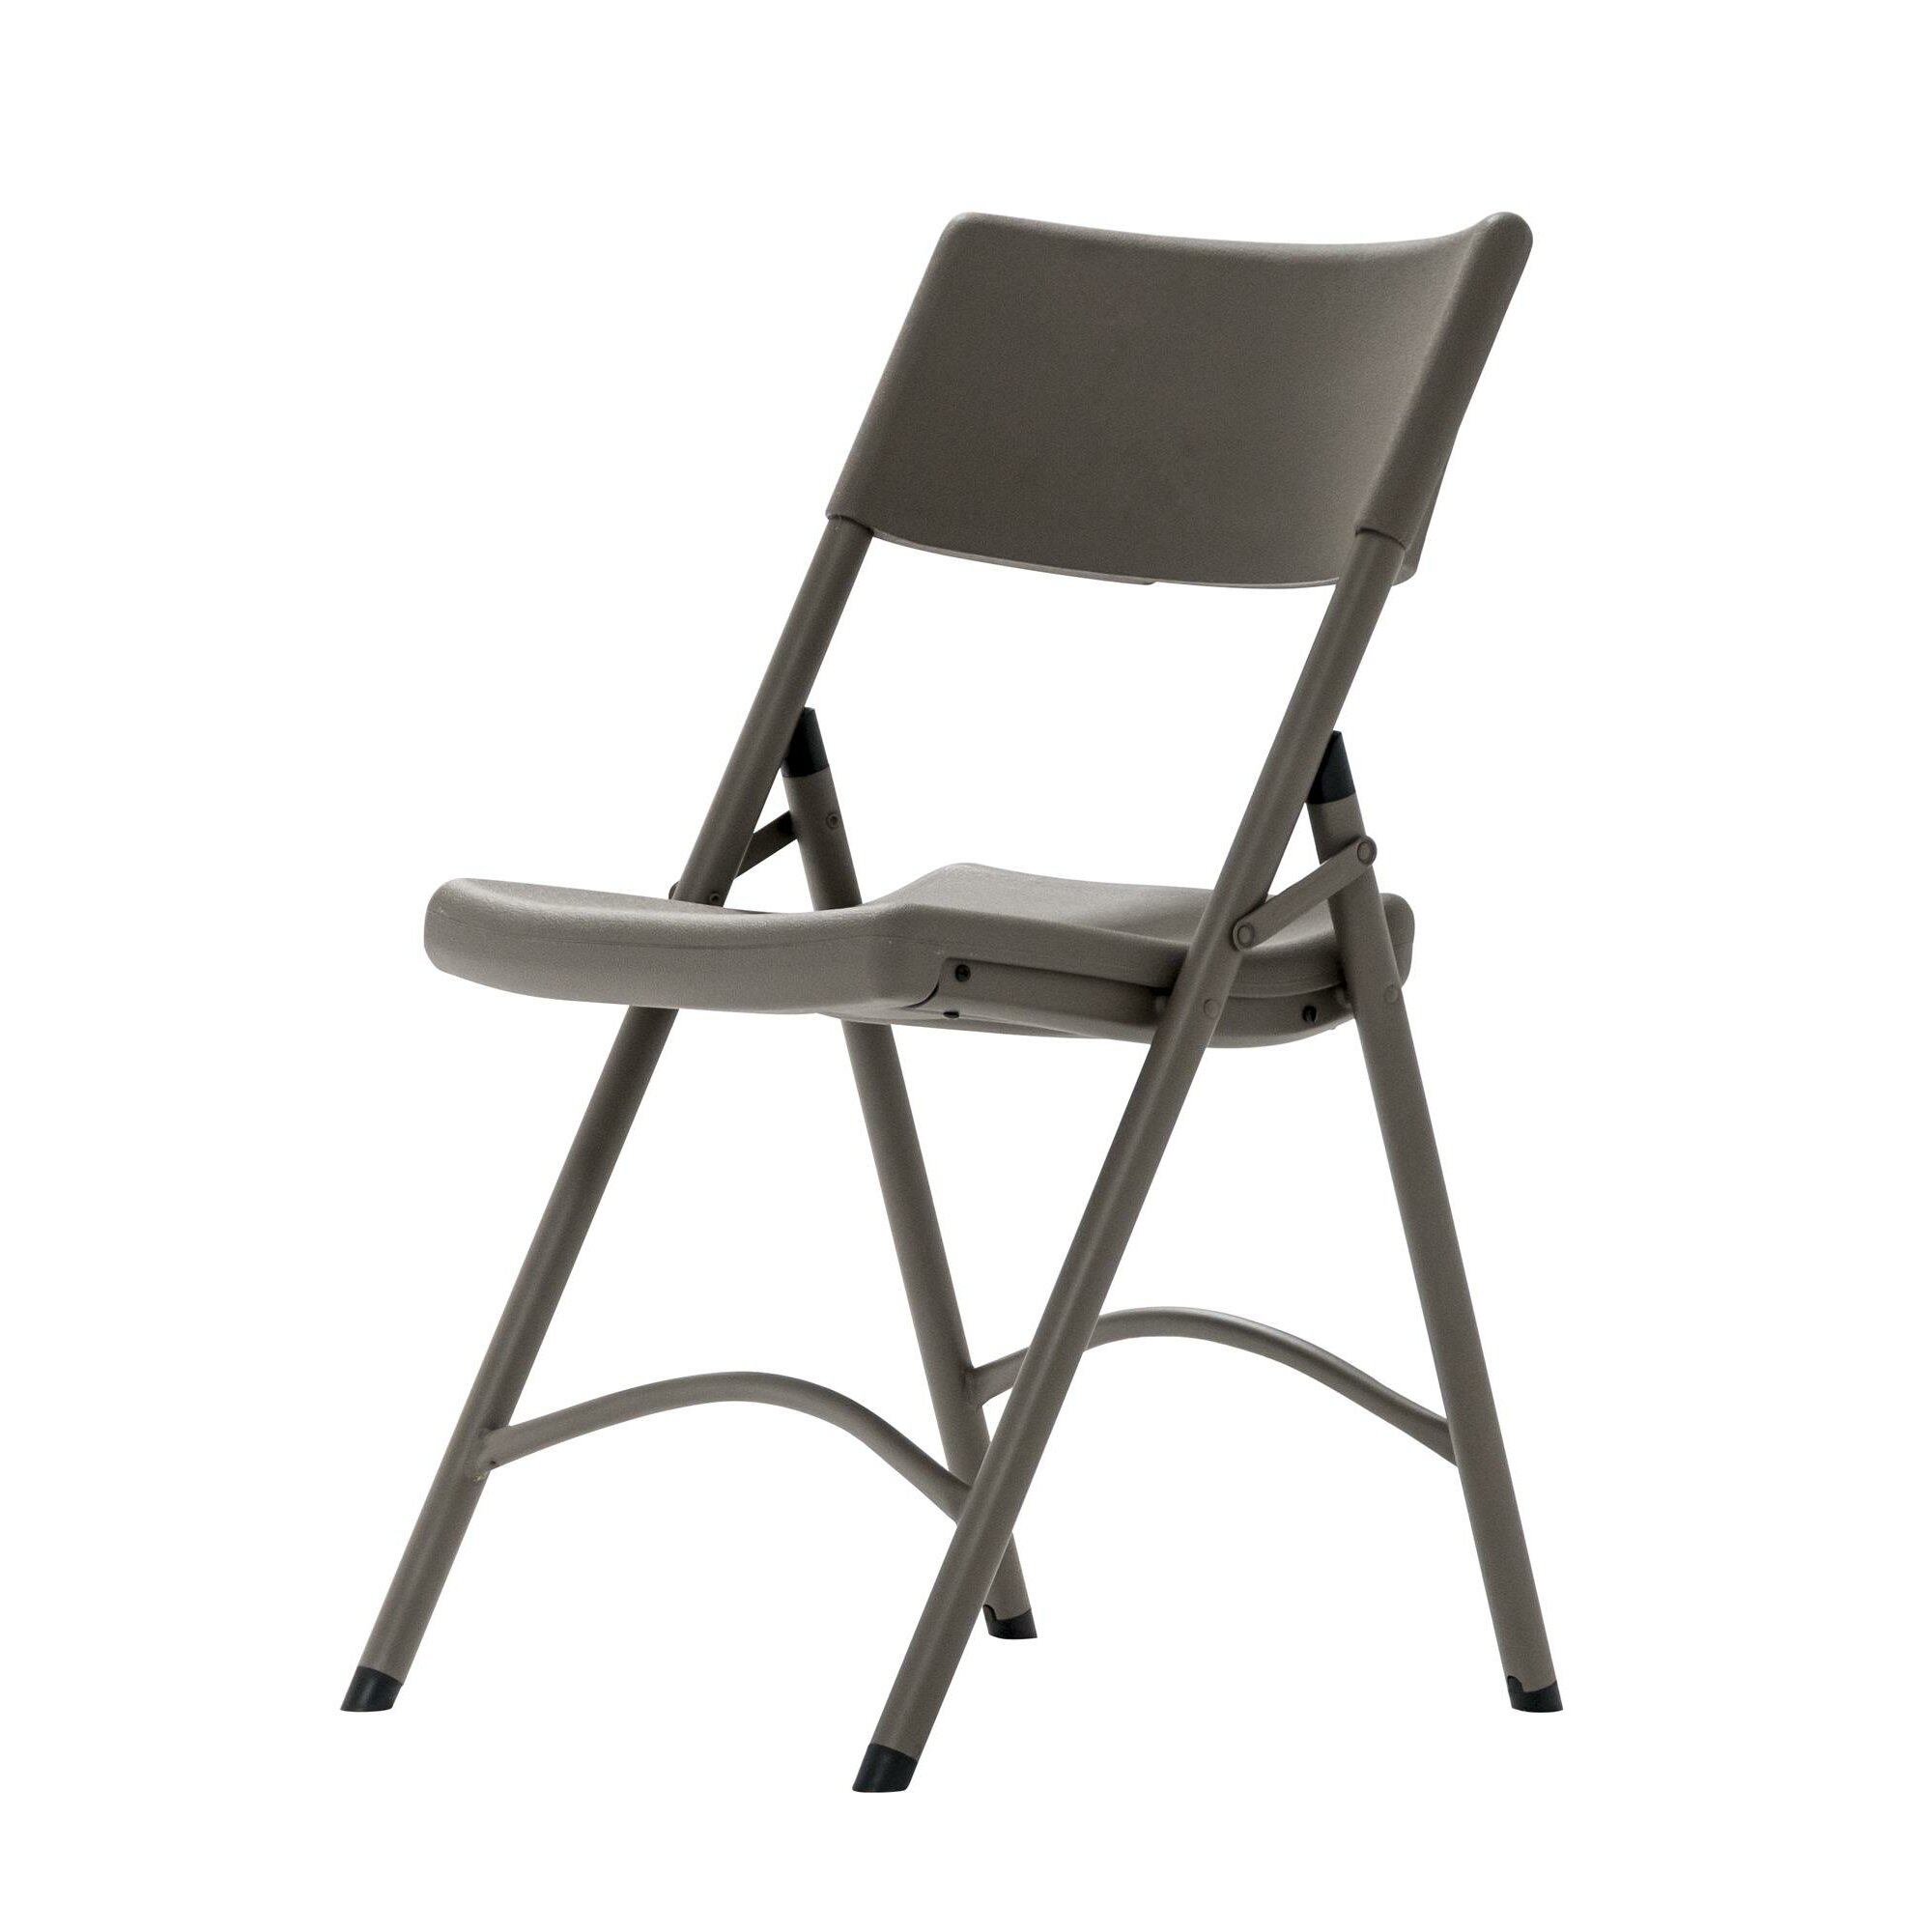 Cosco Home and fice Premium Heavy Duty Blow Mold Folding Chair Set